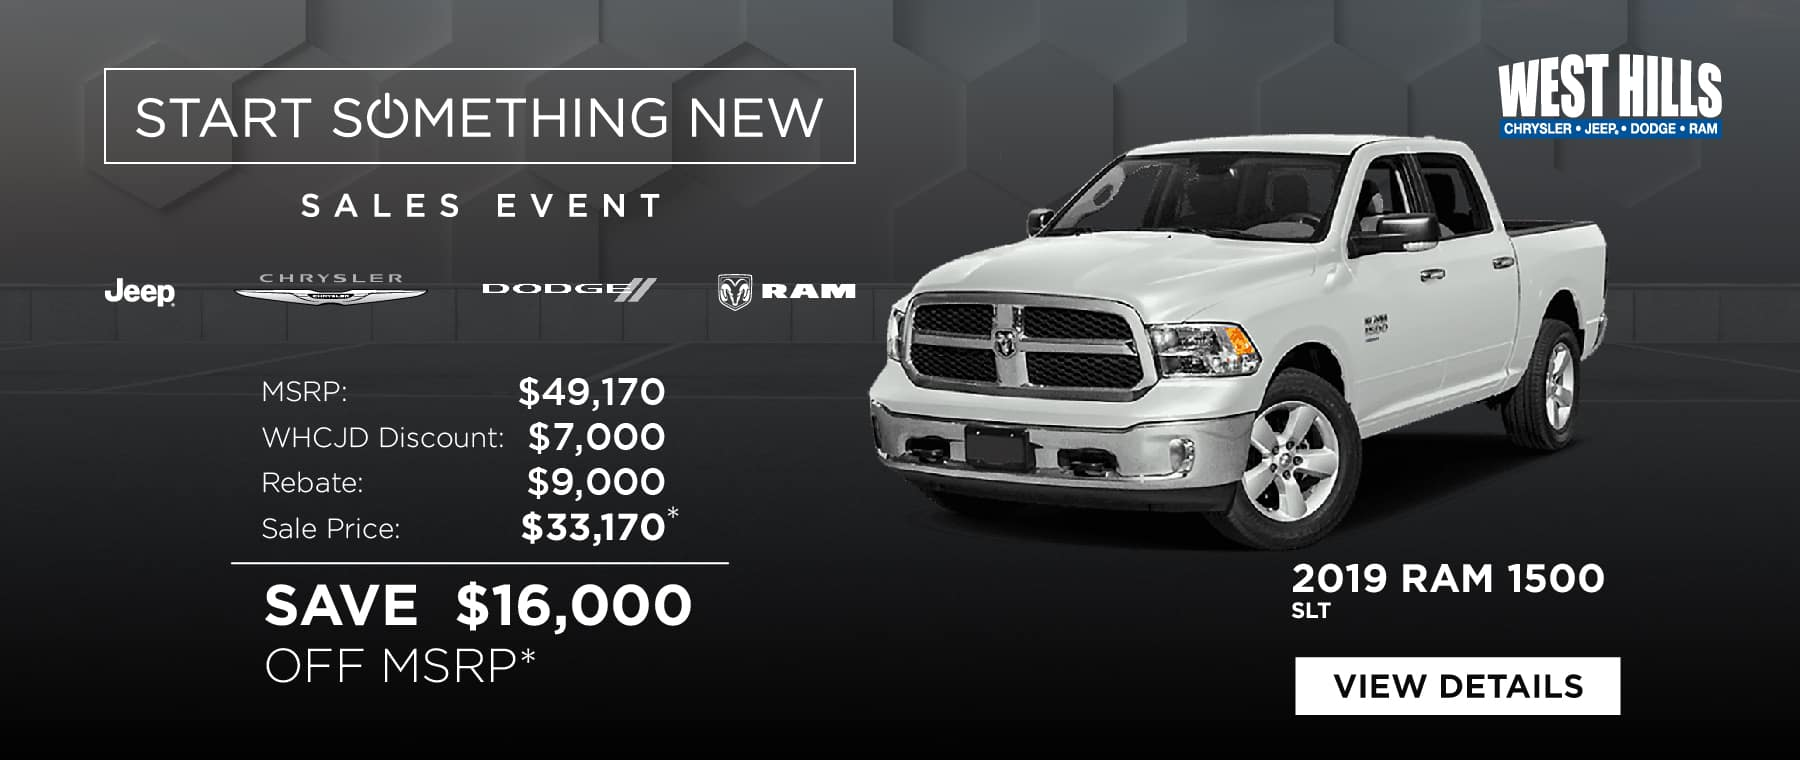 2019 RAM 1500 SLT (featured vehicle) MSRP: $49,170 WHCJDR Discount: $7,000 Rebate: $9,000 Sale Price: $33,170* SAVE $16,000 OFF MSRP*  * Offer valid on 2019 RAM 1500 SLT. VIN: 1C6RR7LT8KS503530.  MSRP $49,170. WHCJDR Discount $7,000. Rebate of $9,000. Based on approval of program ID 70CK1, WECK5, 45CKA1, 45CKA2, 45CKA3, WECKA1, WECKA, 39CKG3. Subject to credit approval. Down payment and monthly payment may vary. Excludes taxes, tags, registration and title, insurance and dealer charges. A negotiable dealer documentary service fee of up to $150 may be added to the sale price or capitalized cost. Exp. 1/31/2019.